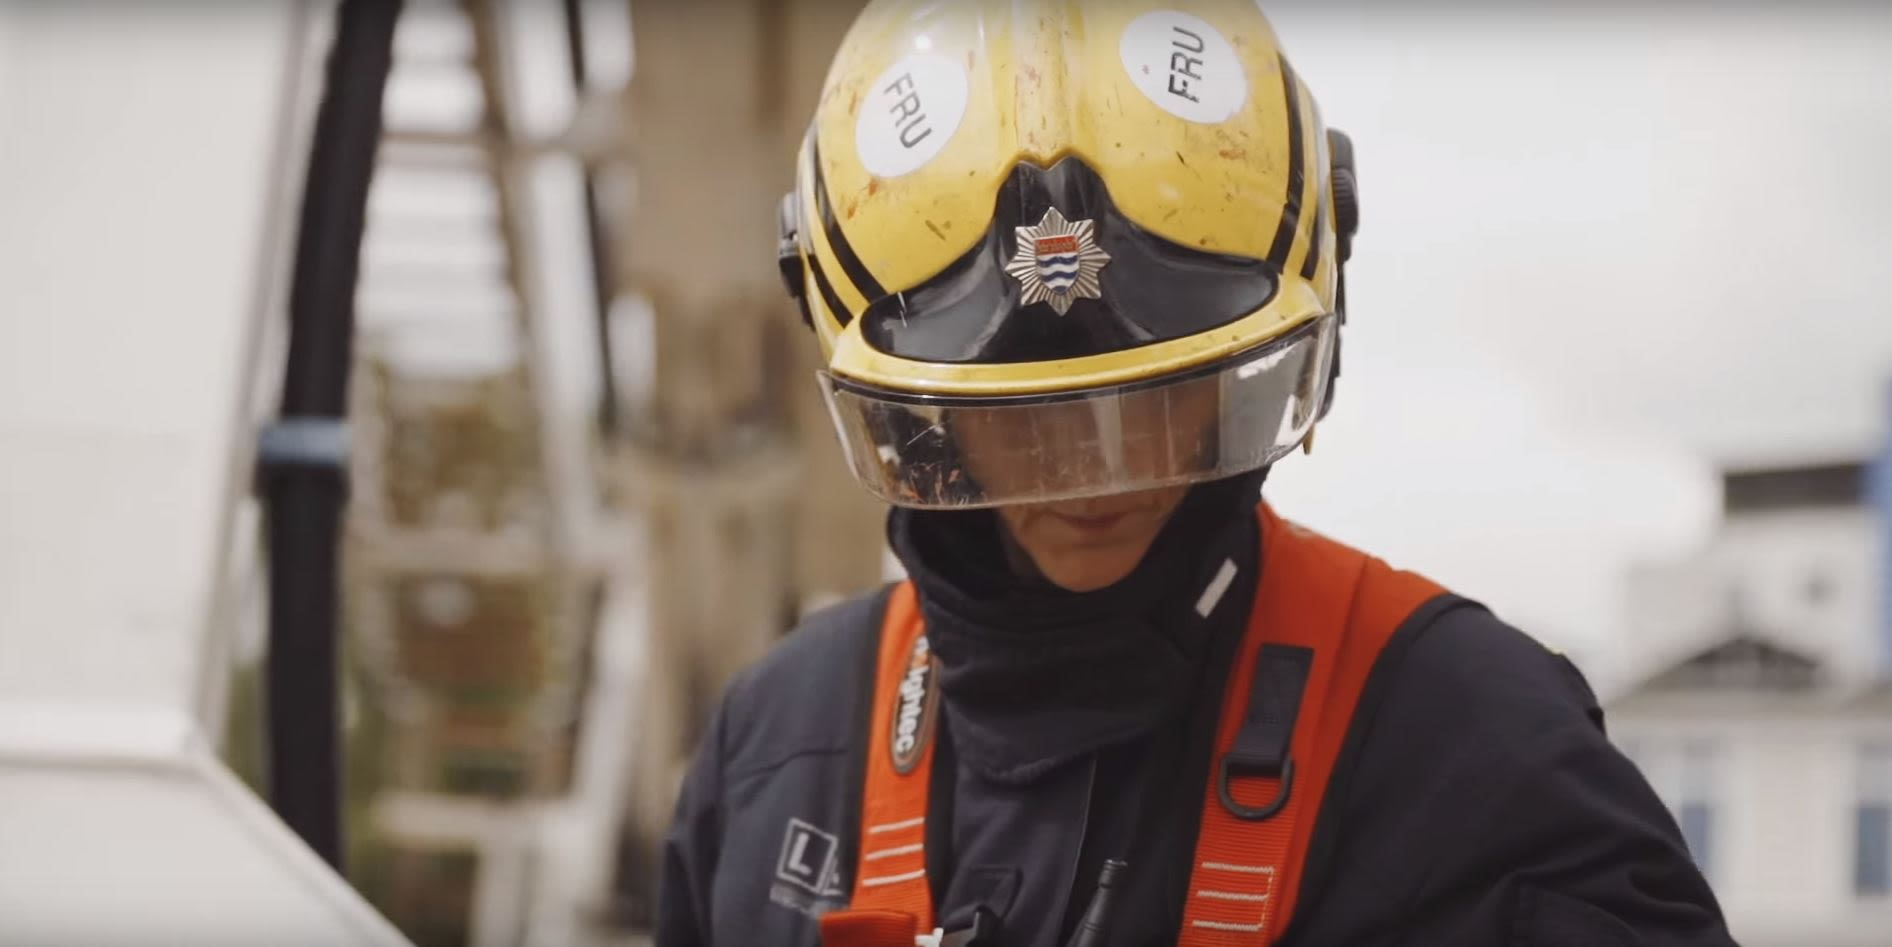 Firefighter in helment close up